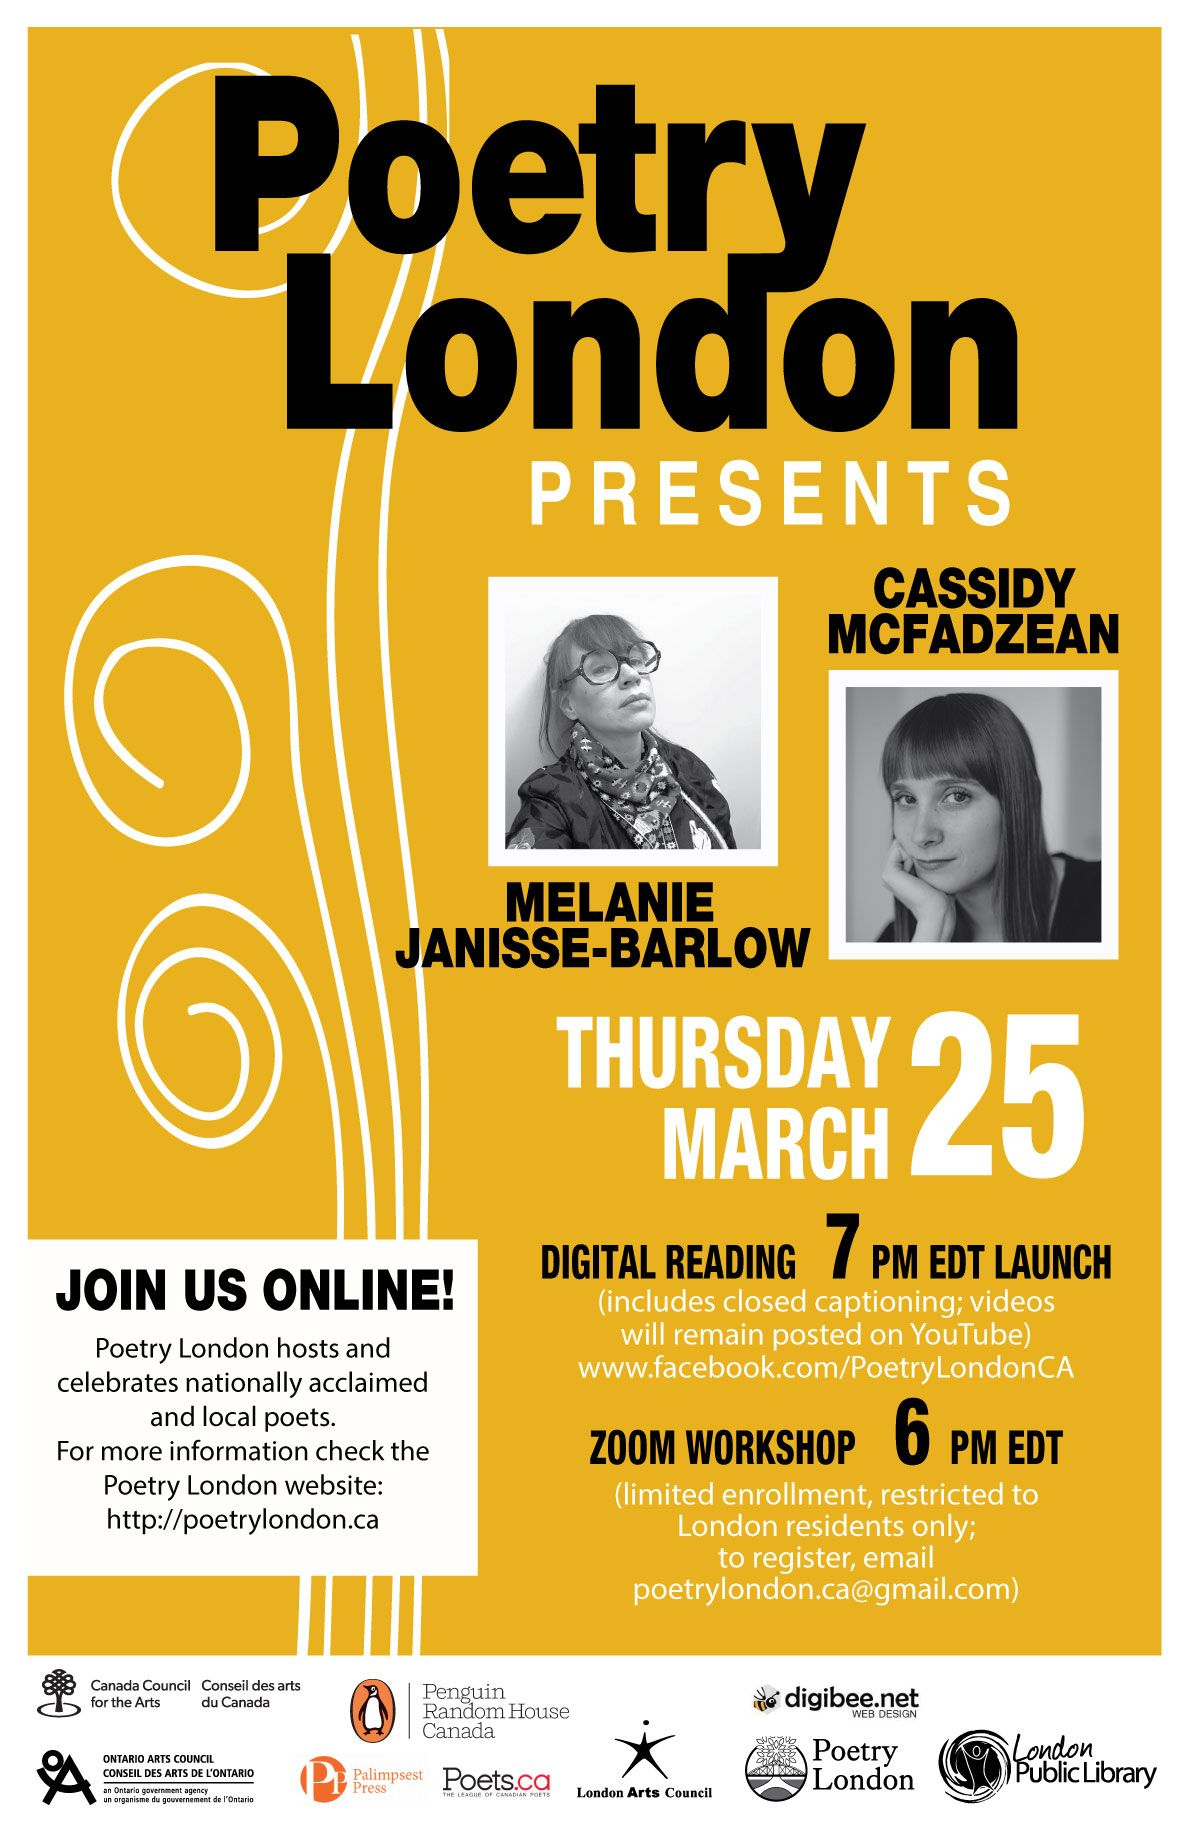 Poetry London Presents Cassidy McFadzean and Melanie Janisse-Barlow Thursday March 25 7pm EDT Zoom Workshop 6pm EDT To register for the workshop, email poetrylondon.ca@gmail.com (enrollment limited)